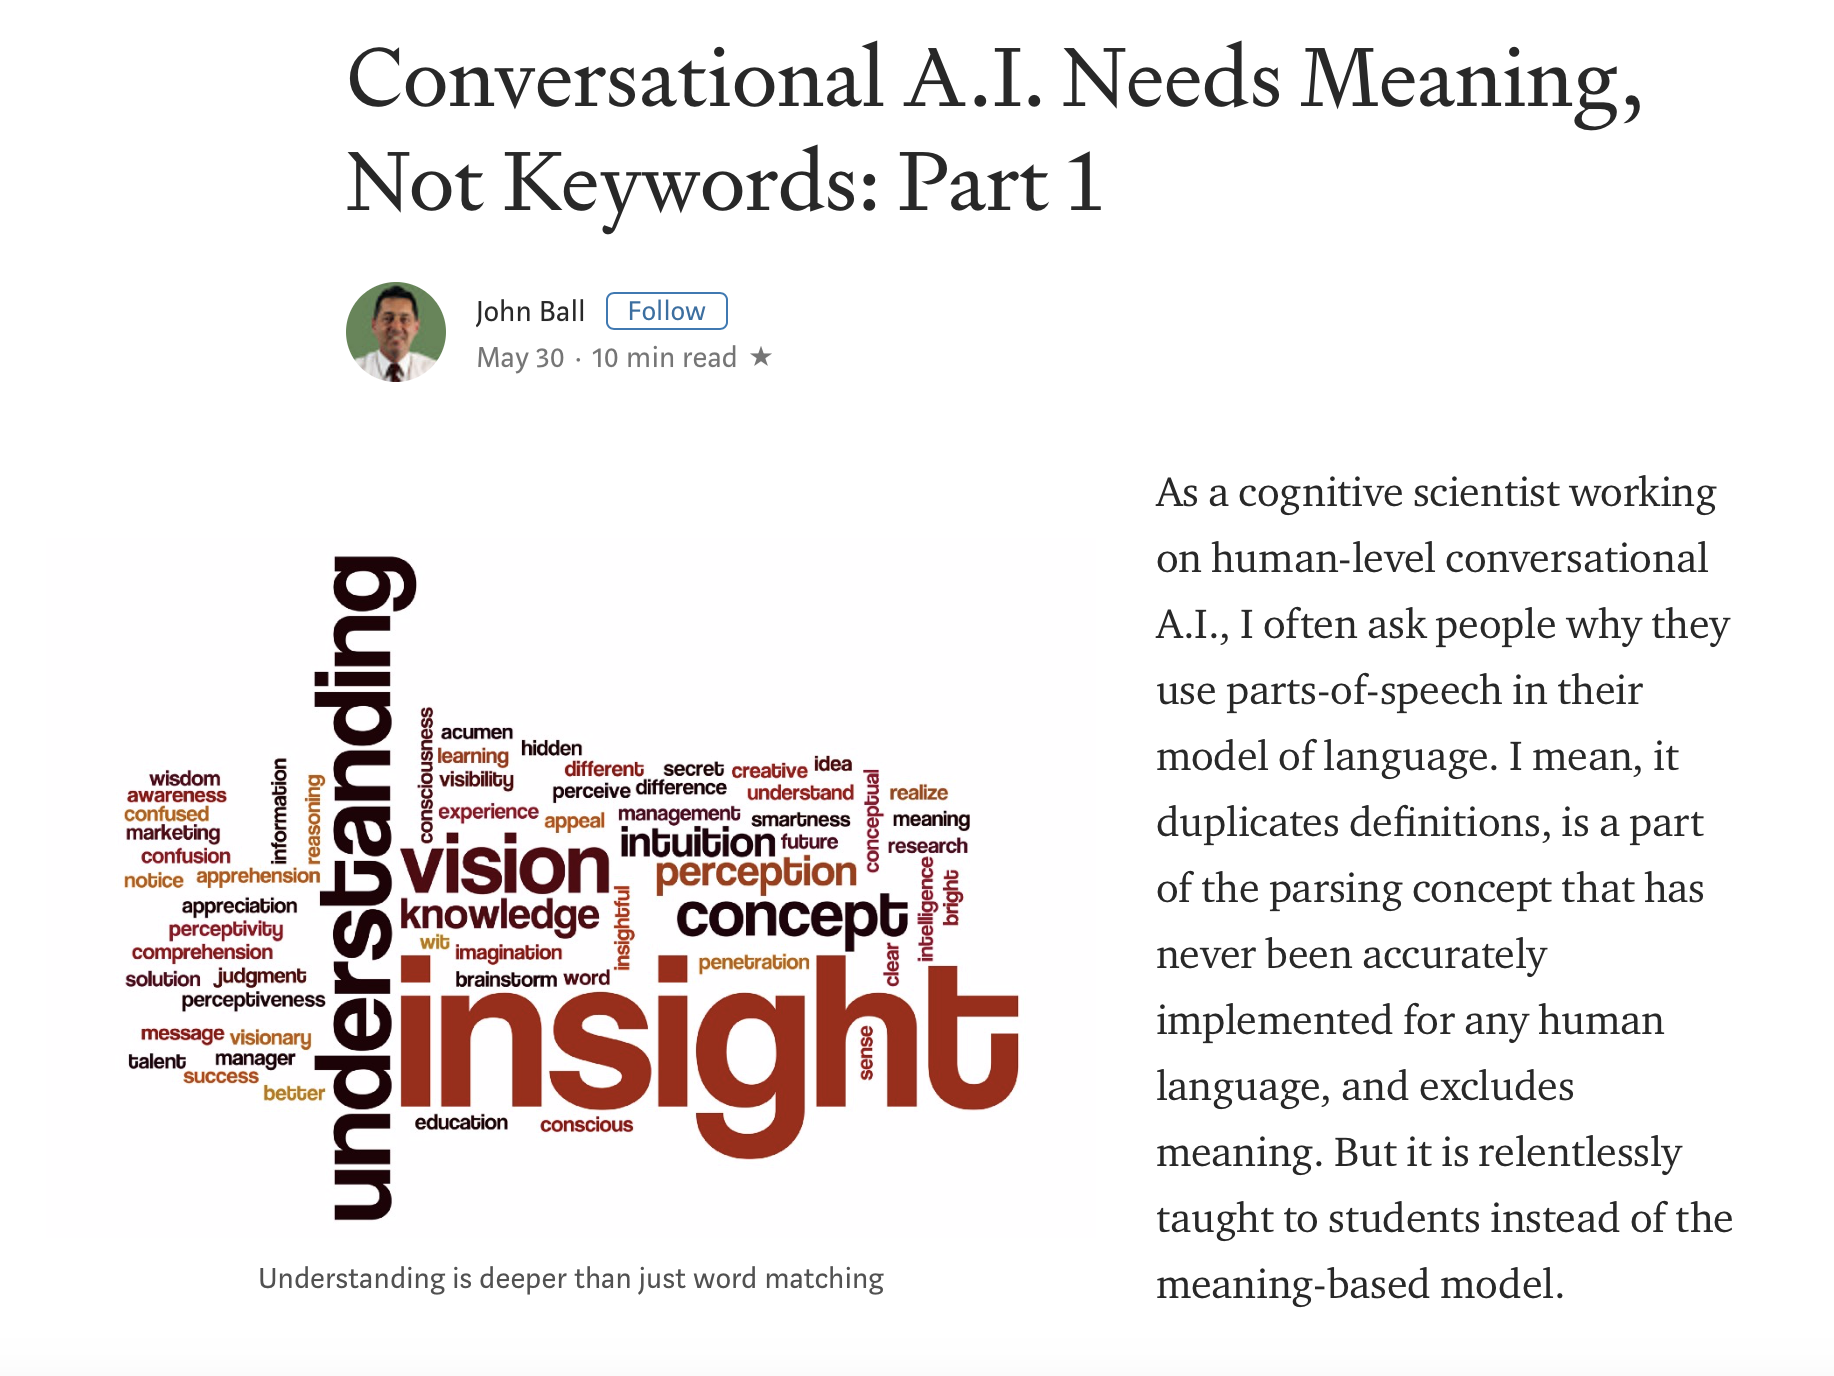 Conversational A.I. Needs Meaning, Not Keywords- Part 1